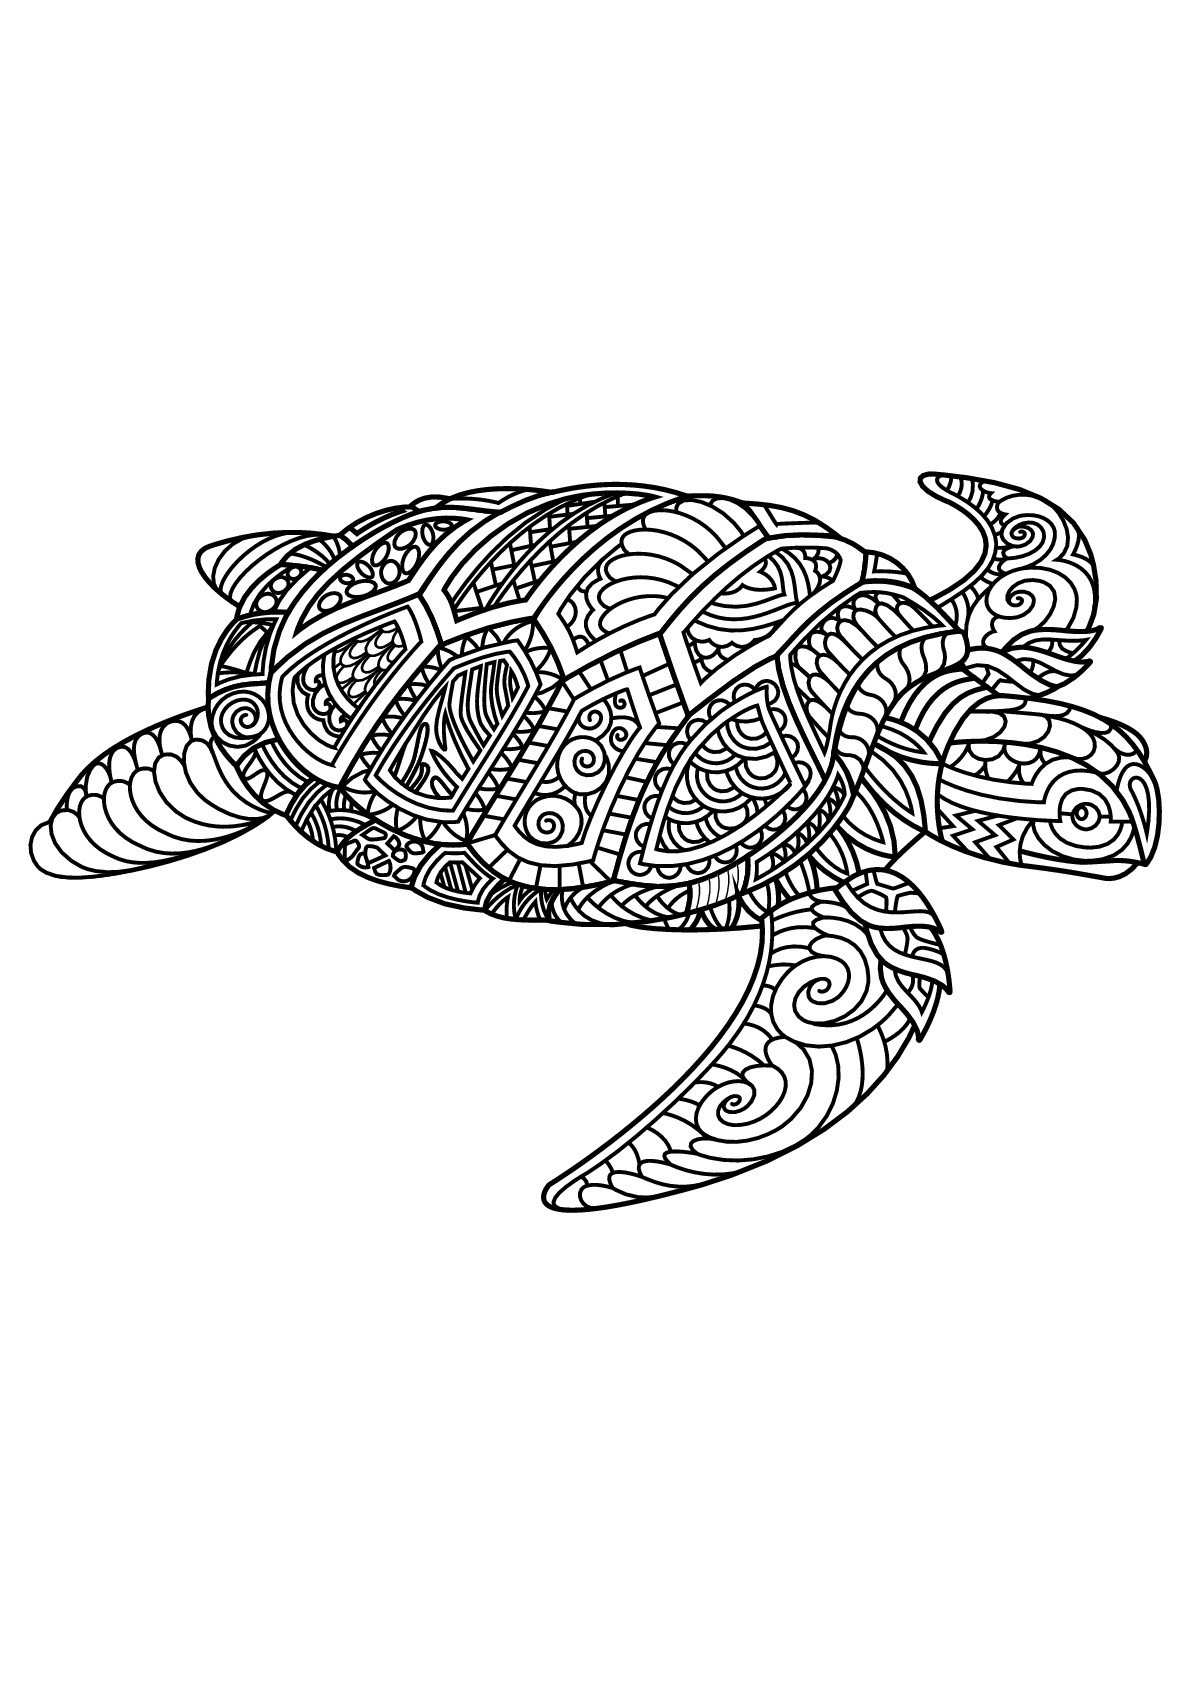 Best ideas about Turtle Coloring Pages For Adults . Save or Pin Free book turtle Turtles Adult Coloring Pages Now.